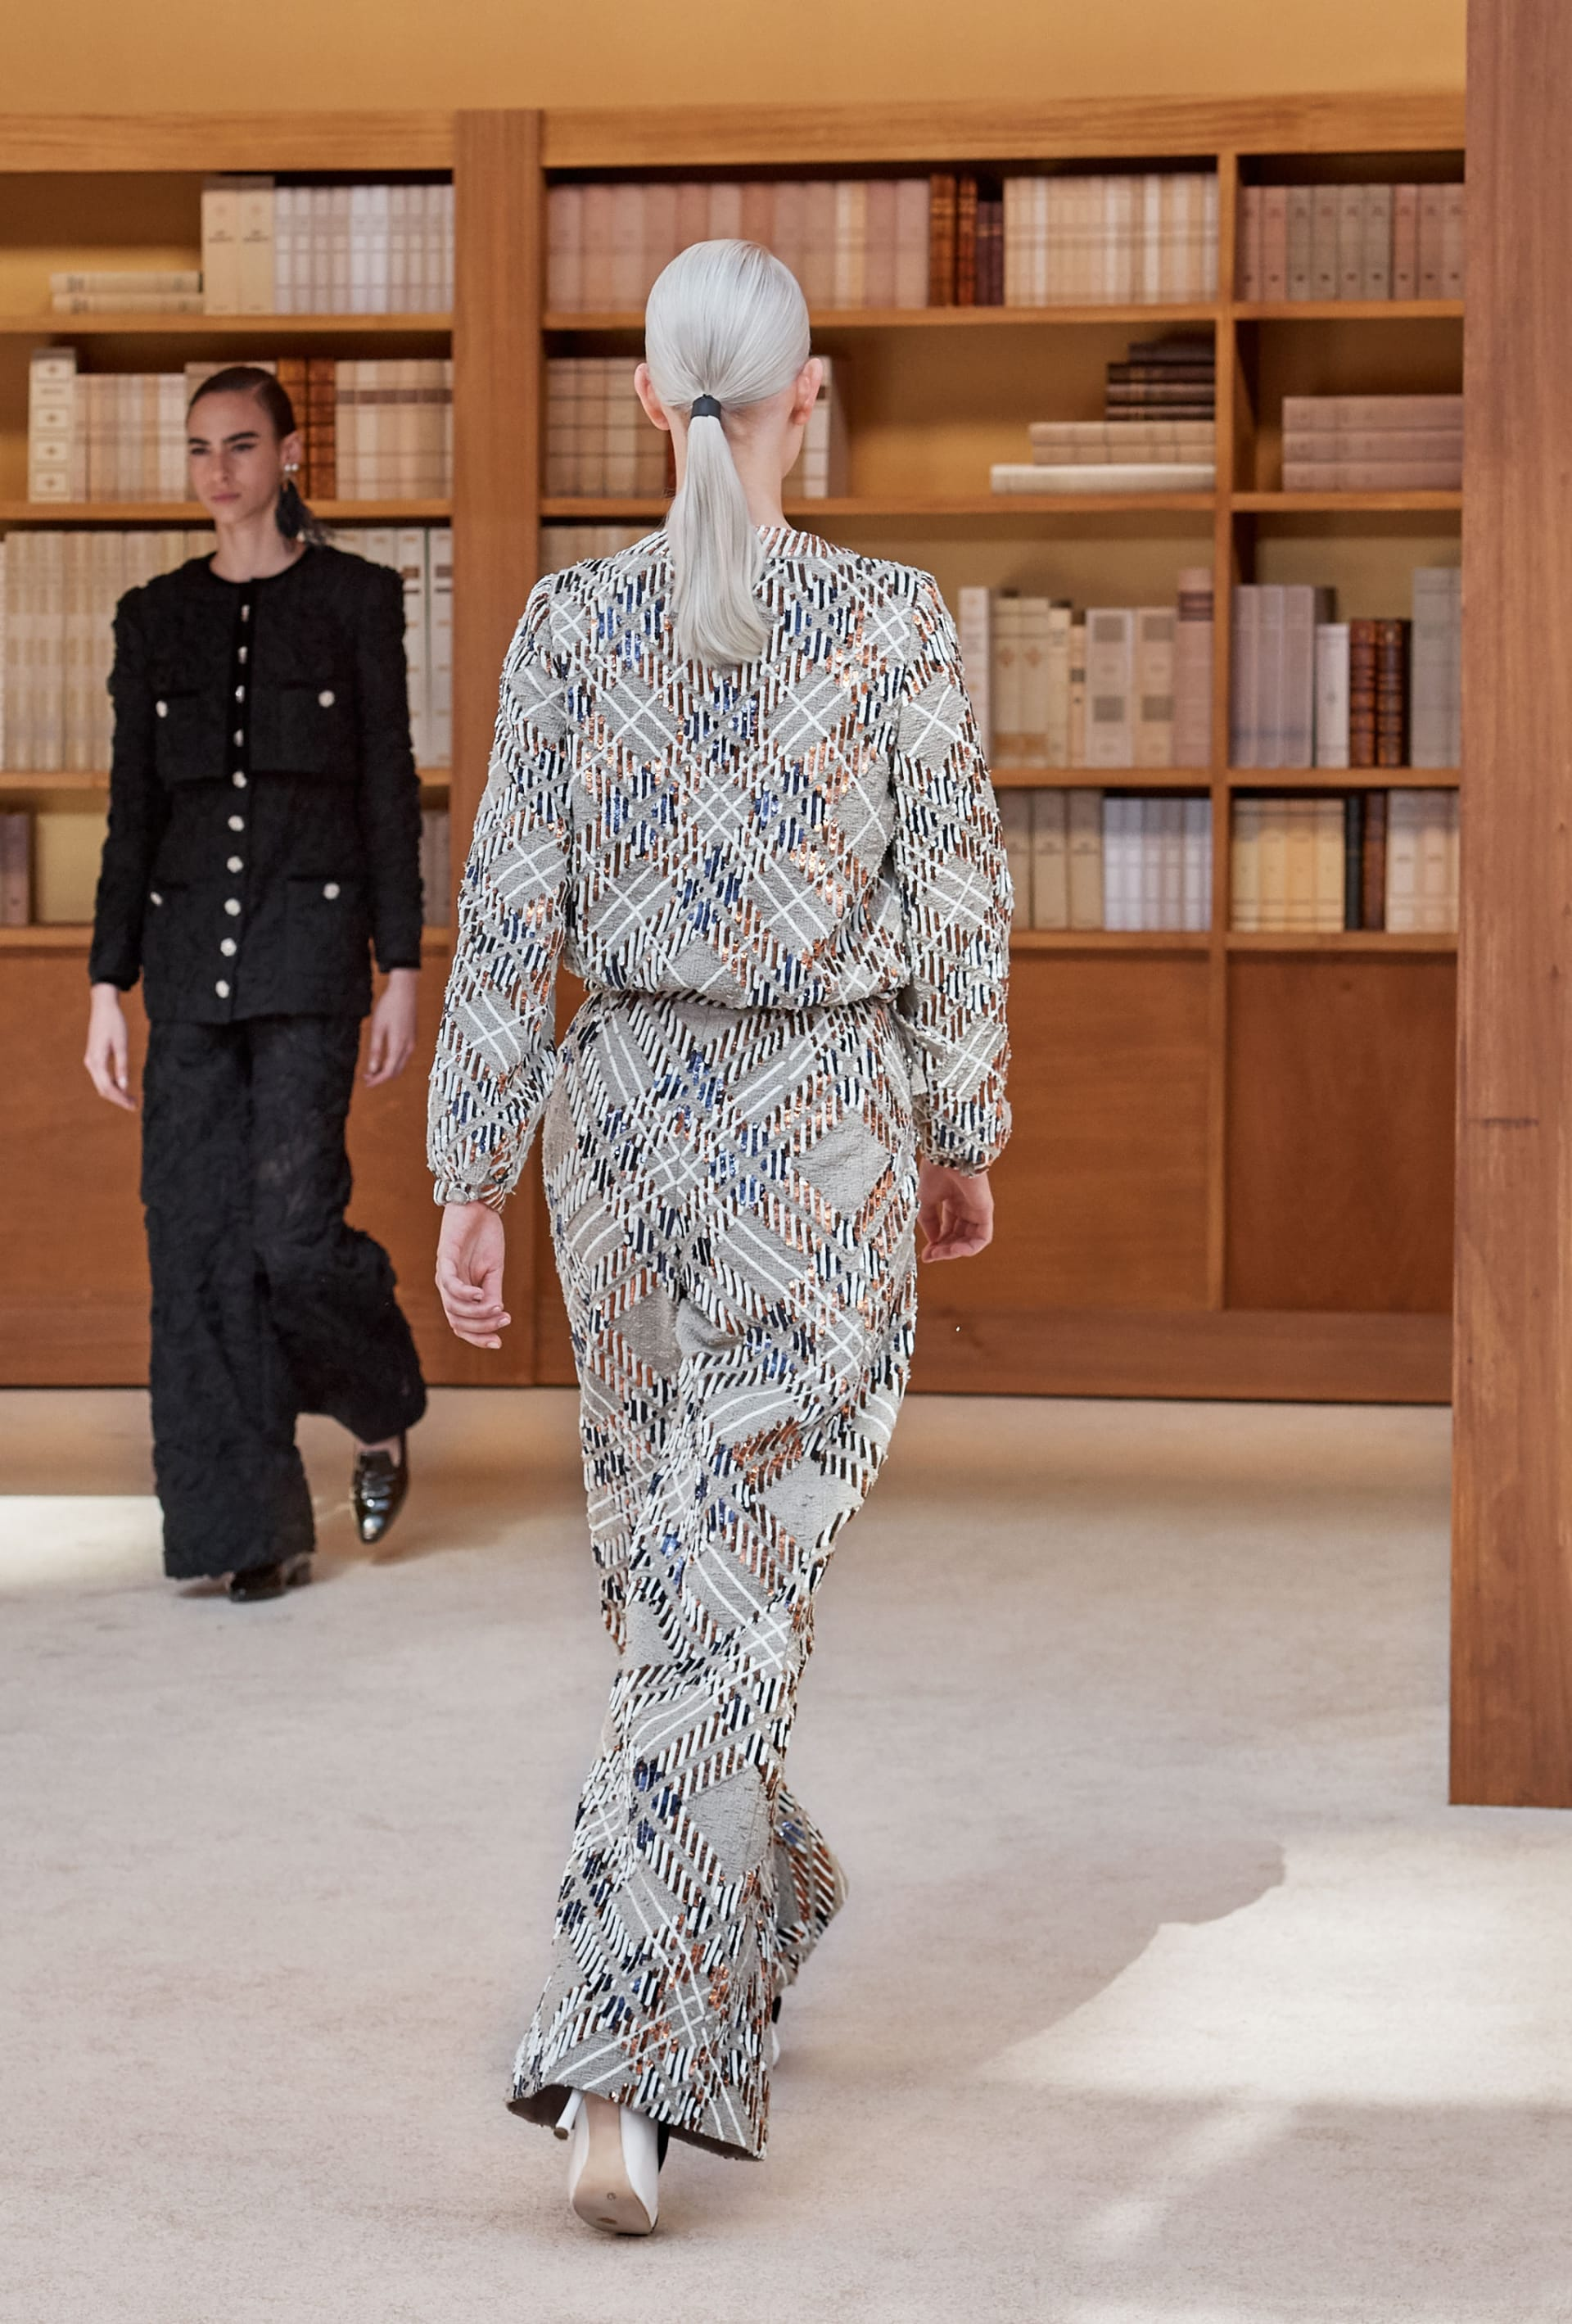 View 5 - Look 23 - Fall-Winter 2019/20 Haute-Couture - see full sized version